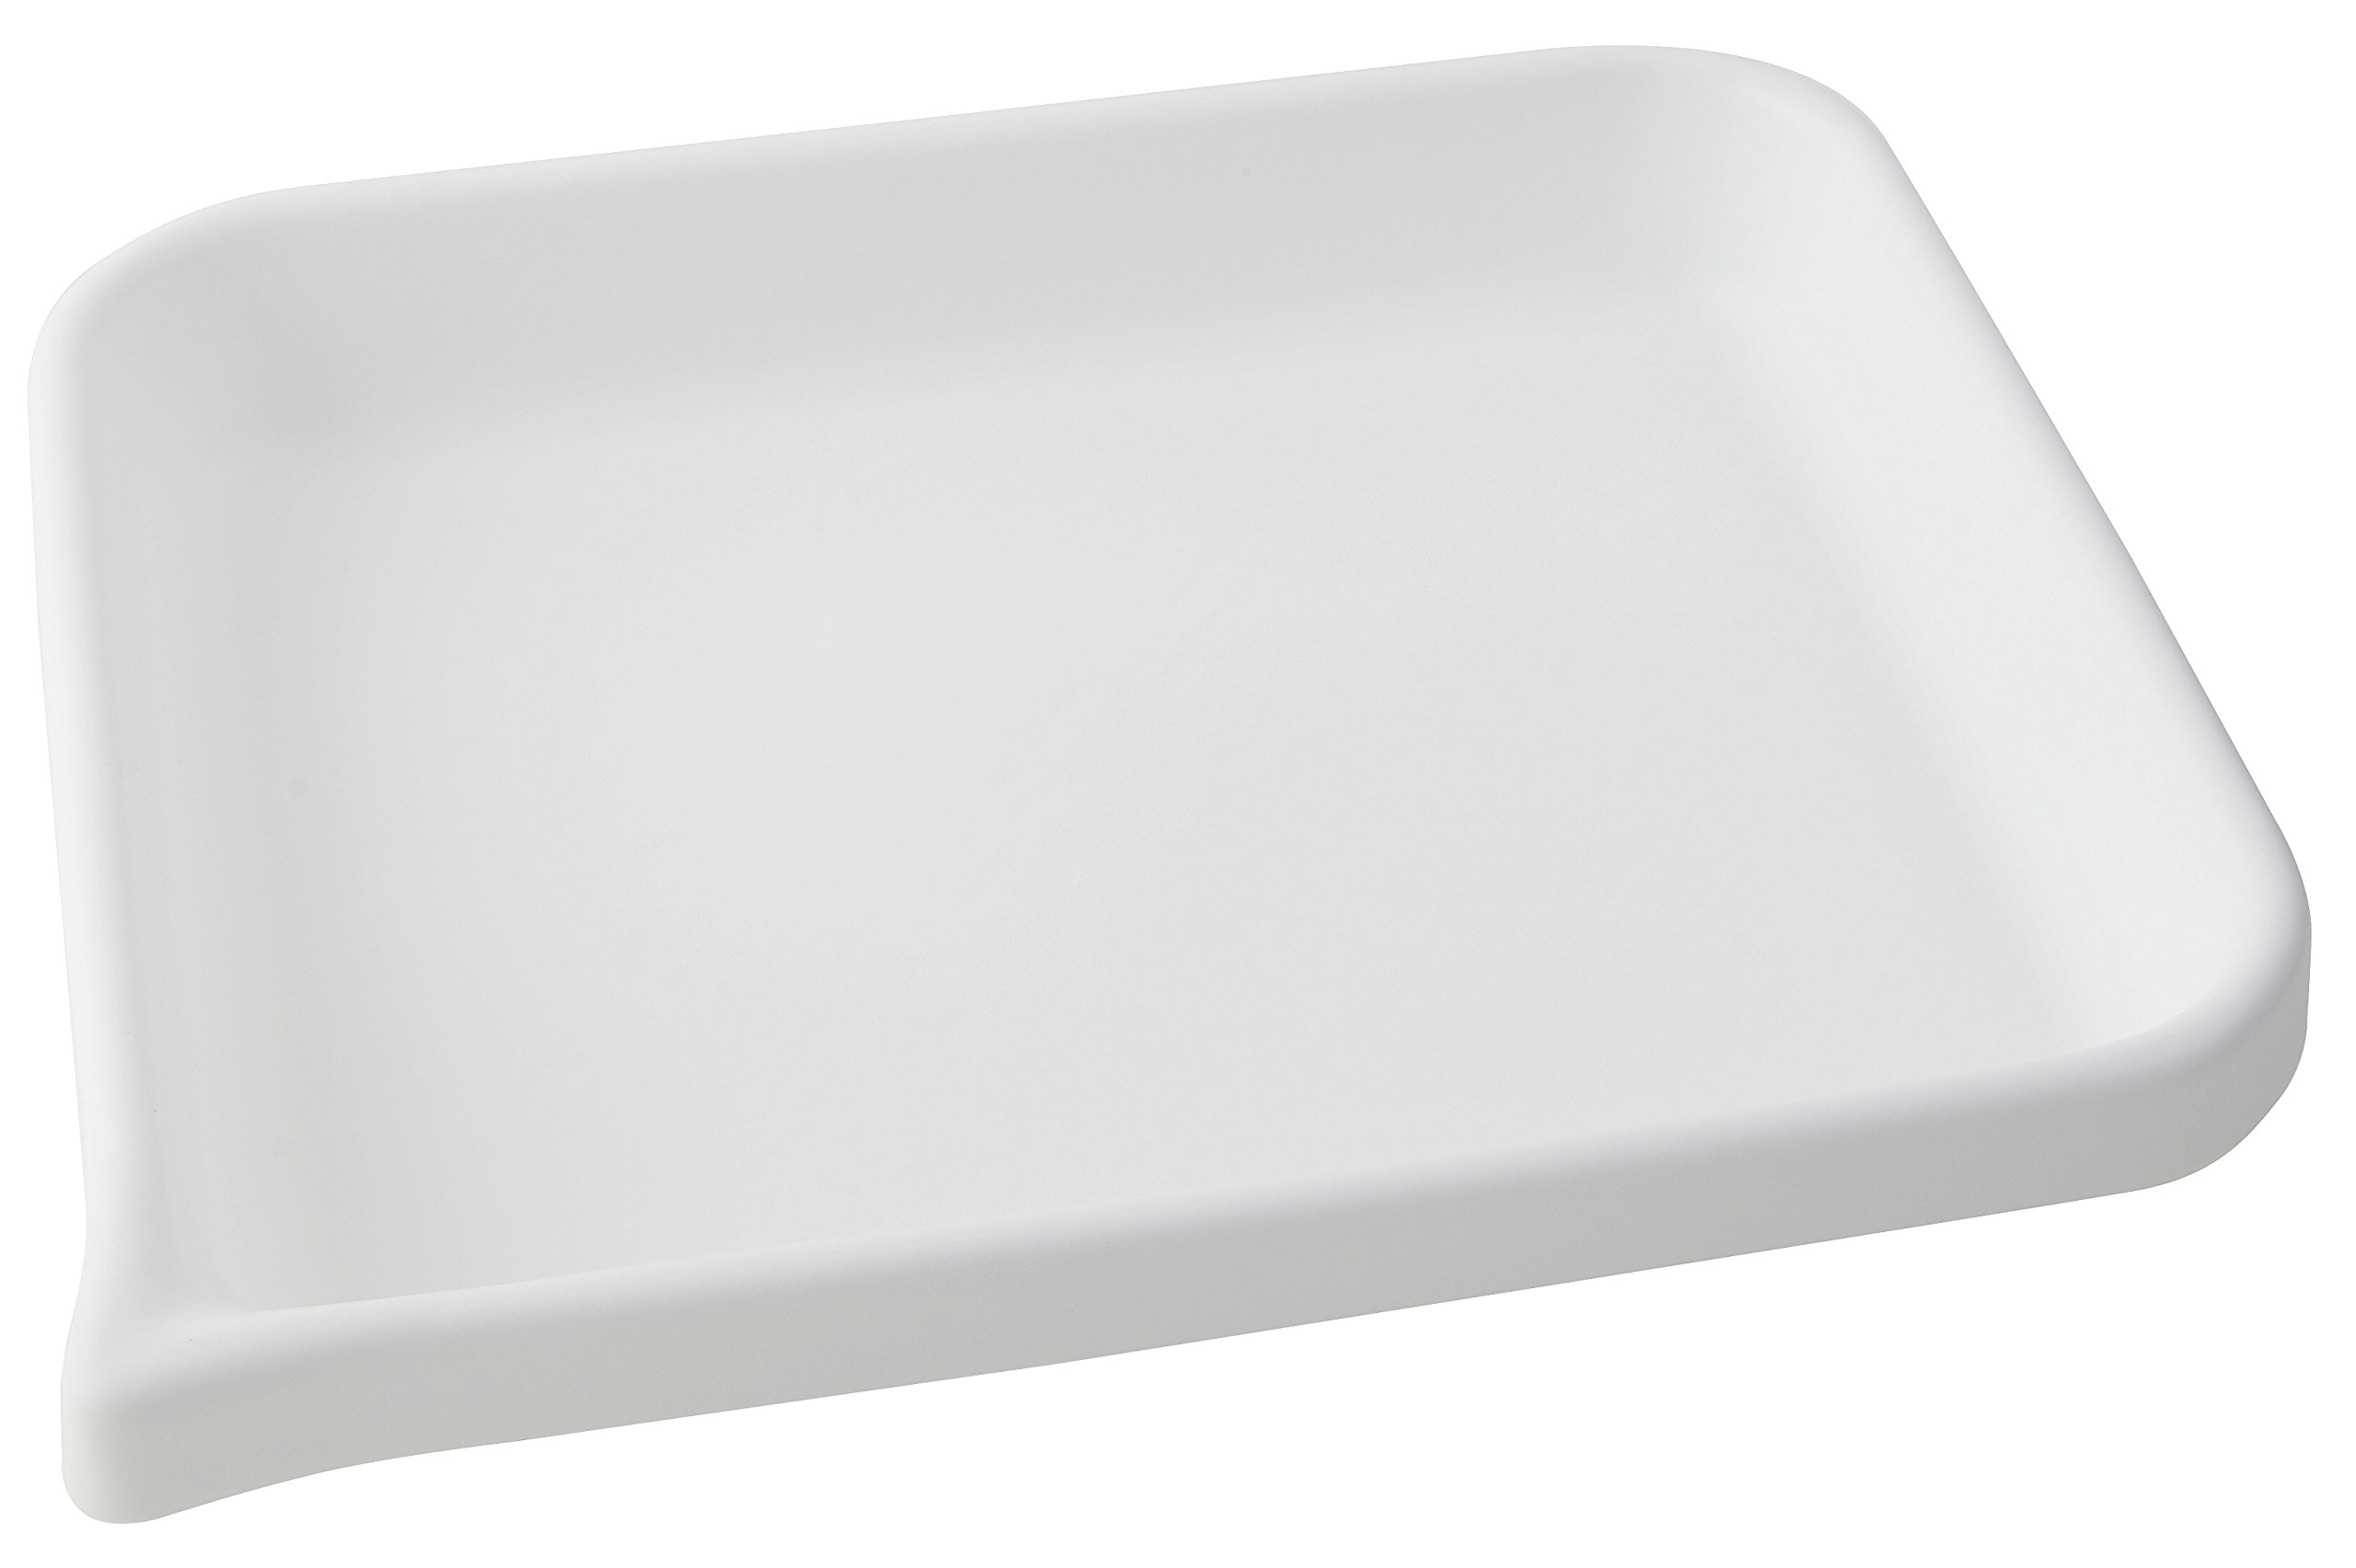 Dynalon 409214 HDPE Developing Flat Bottom Tray, 13.25'' L x 11.25'' W x 1.875'' H by Dynalon